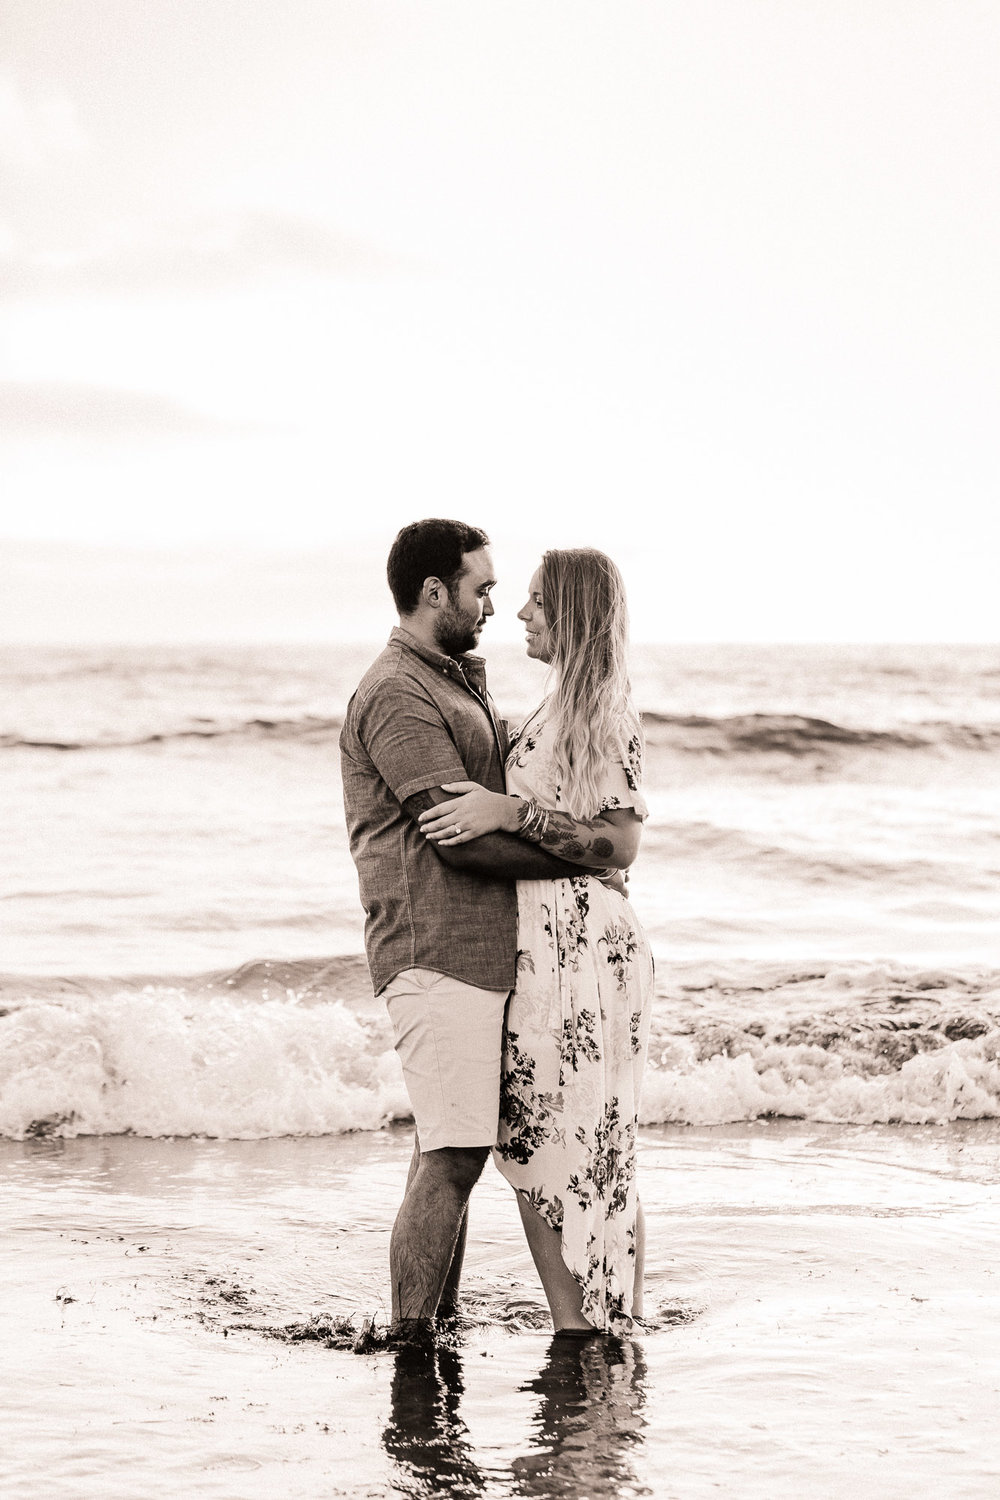 Justine_Puneet_Cardiff_Engagement_Session_246.jpg